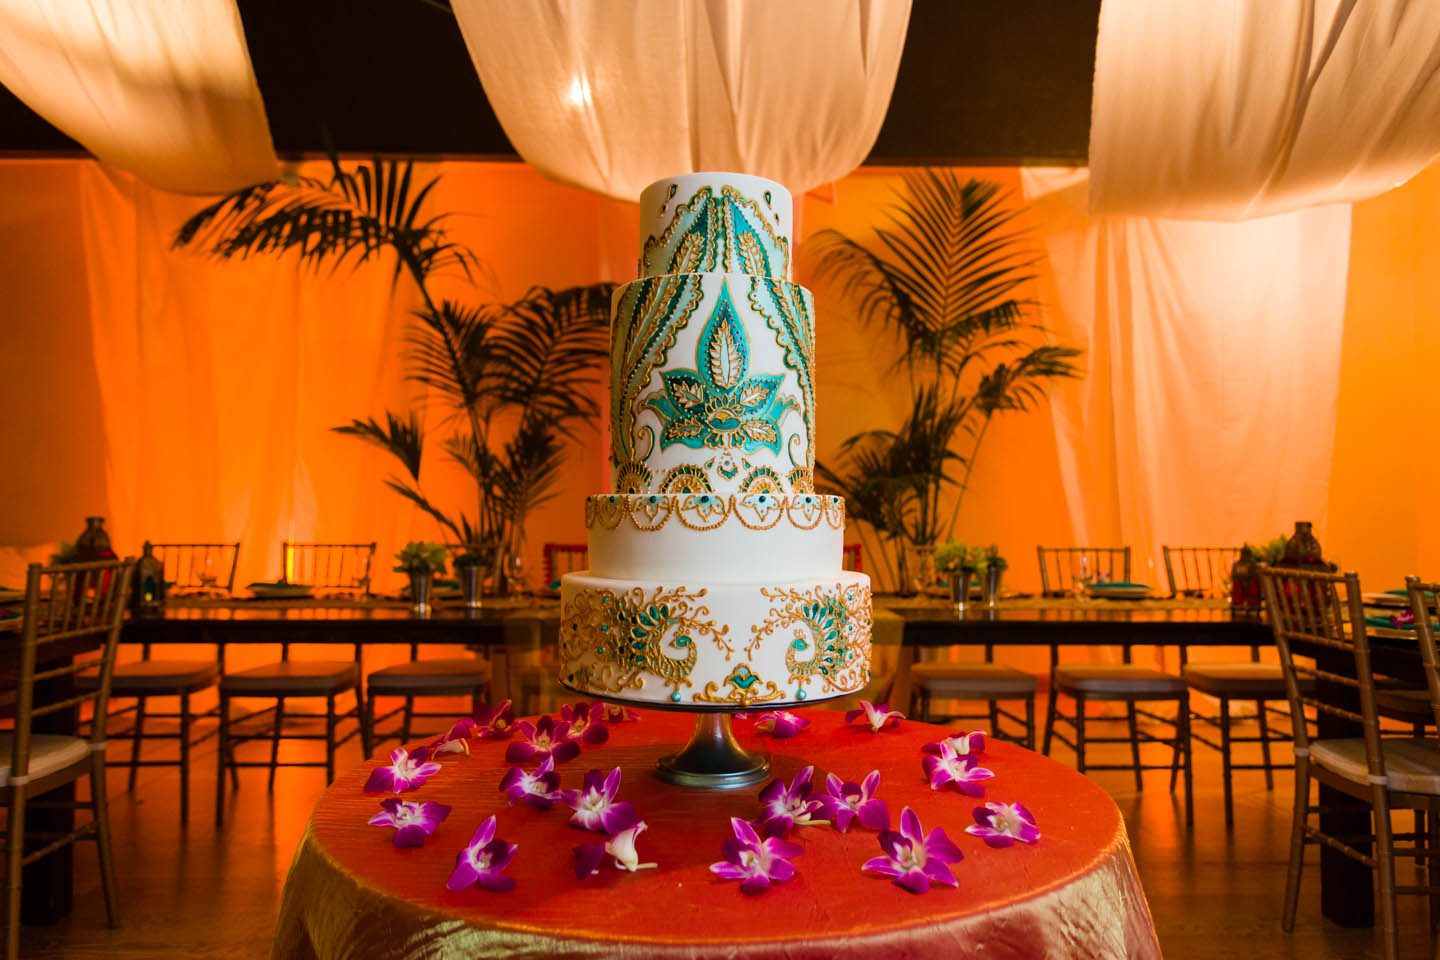 The 4-layer Wedding Cake